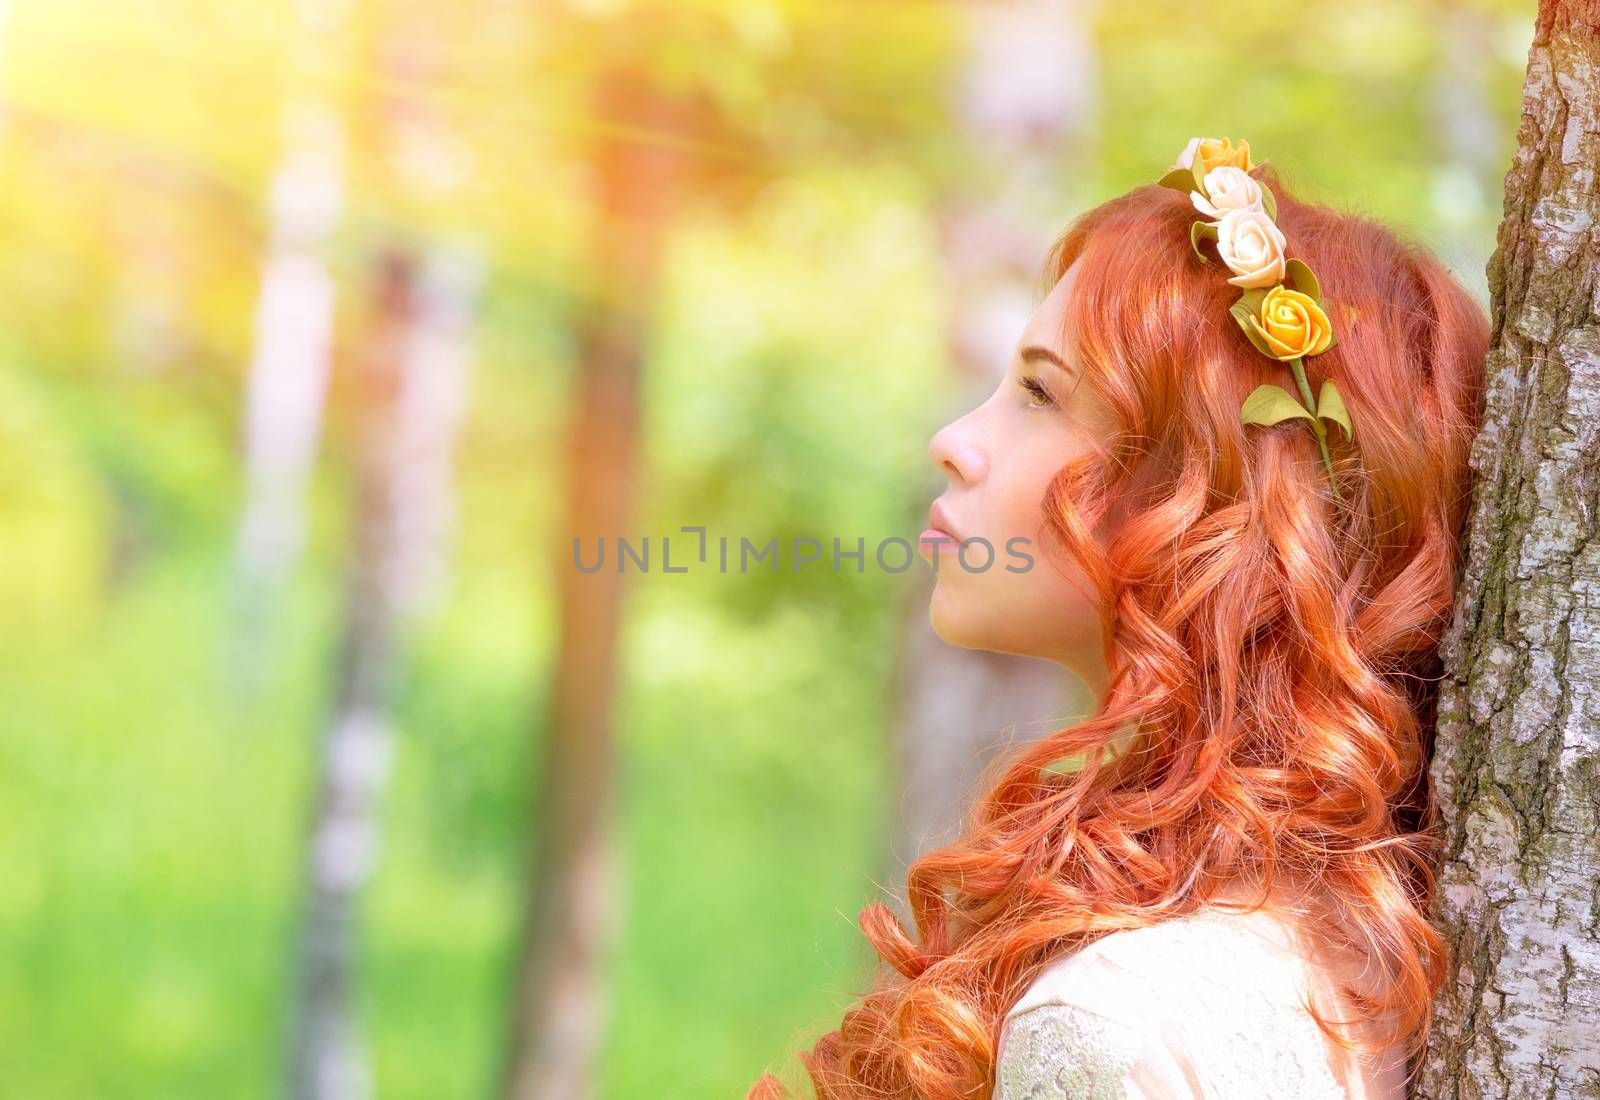 Side view of cute romantic woman looking on sun rays, wearing gentle wreath on curly red hair, fashionable photoshoot in the park